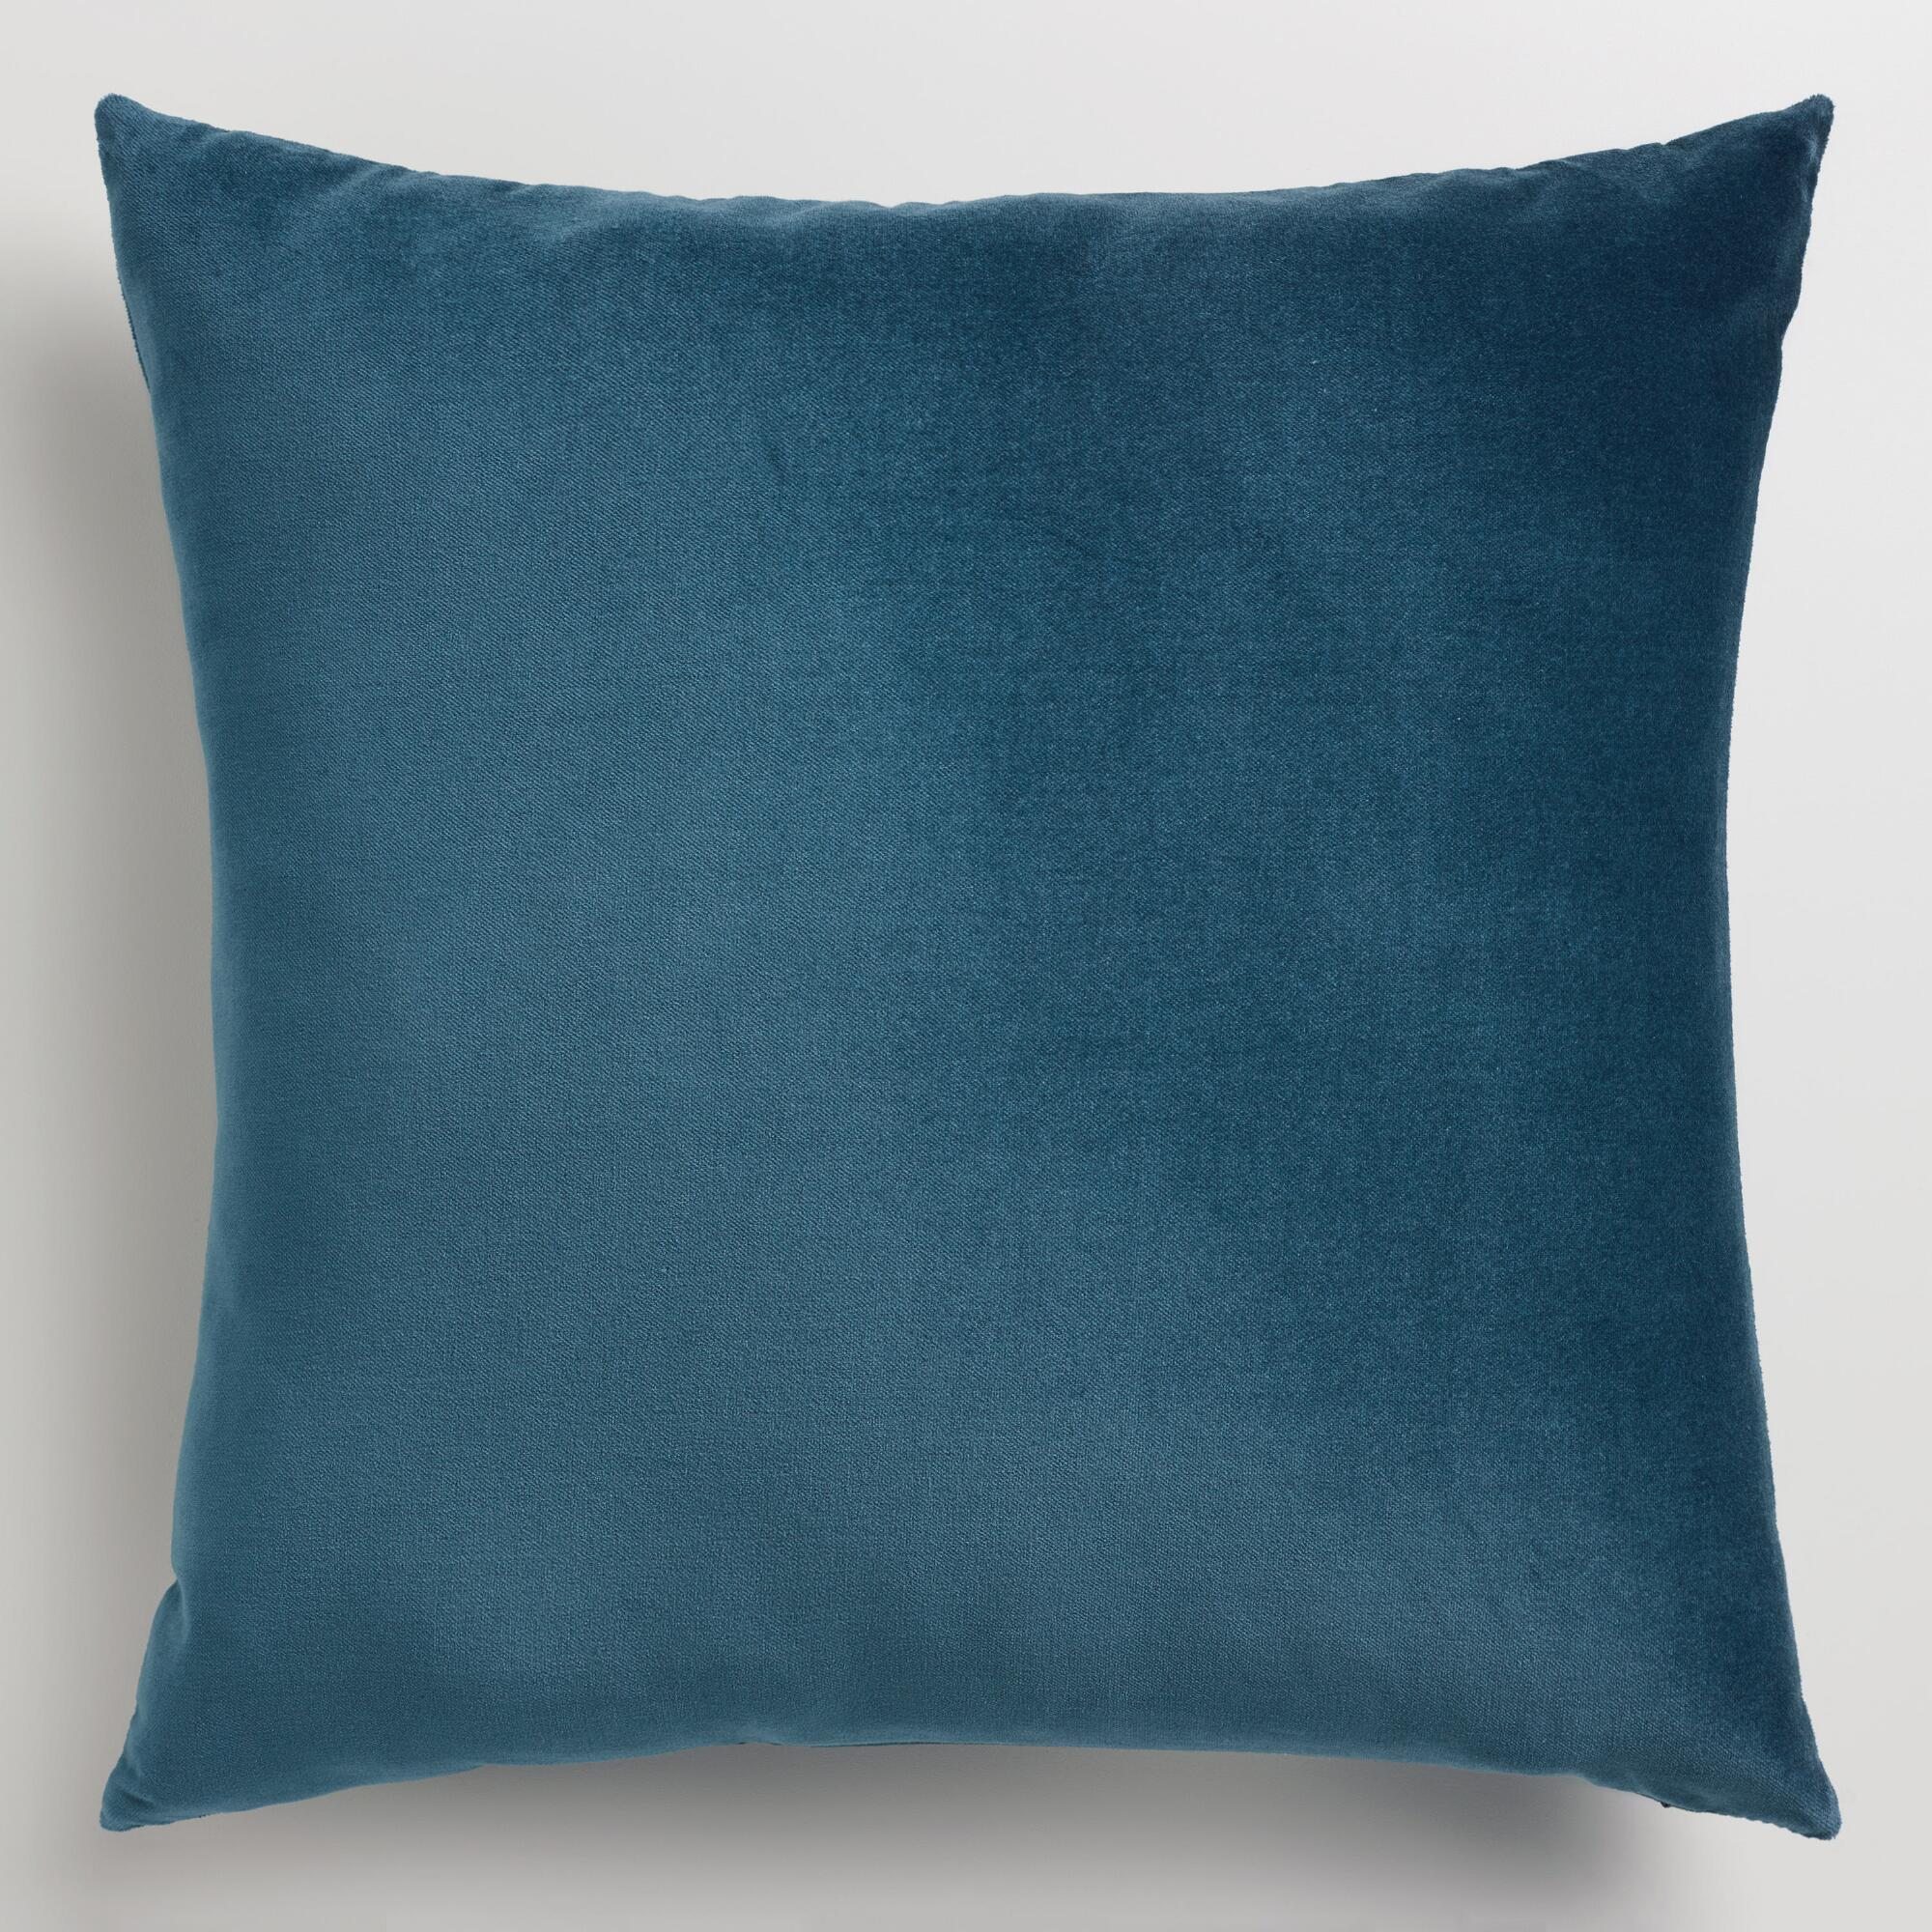 Throw Pillows Velvet : Midnight Blue Velvet Throw Pillow World Market